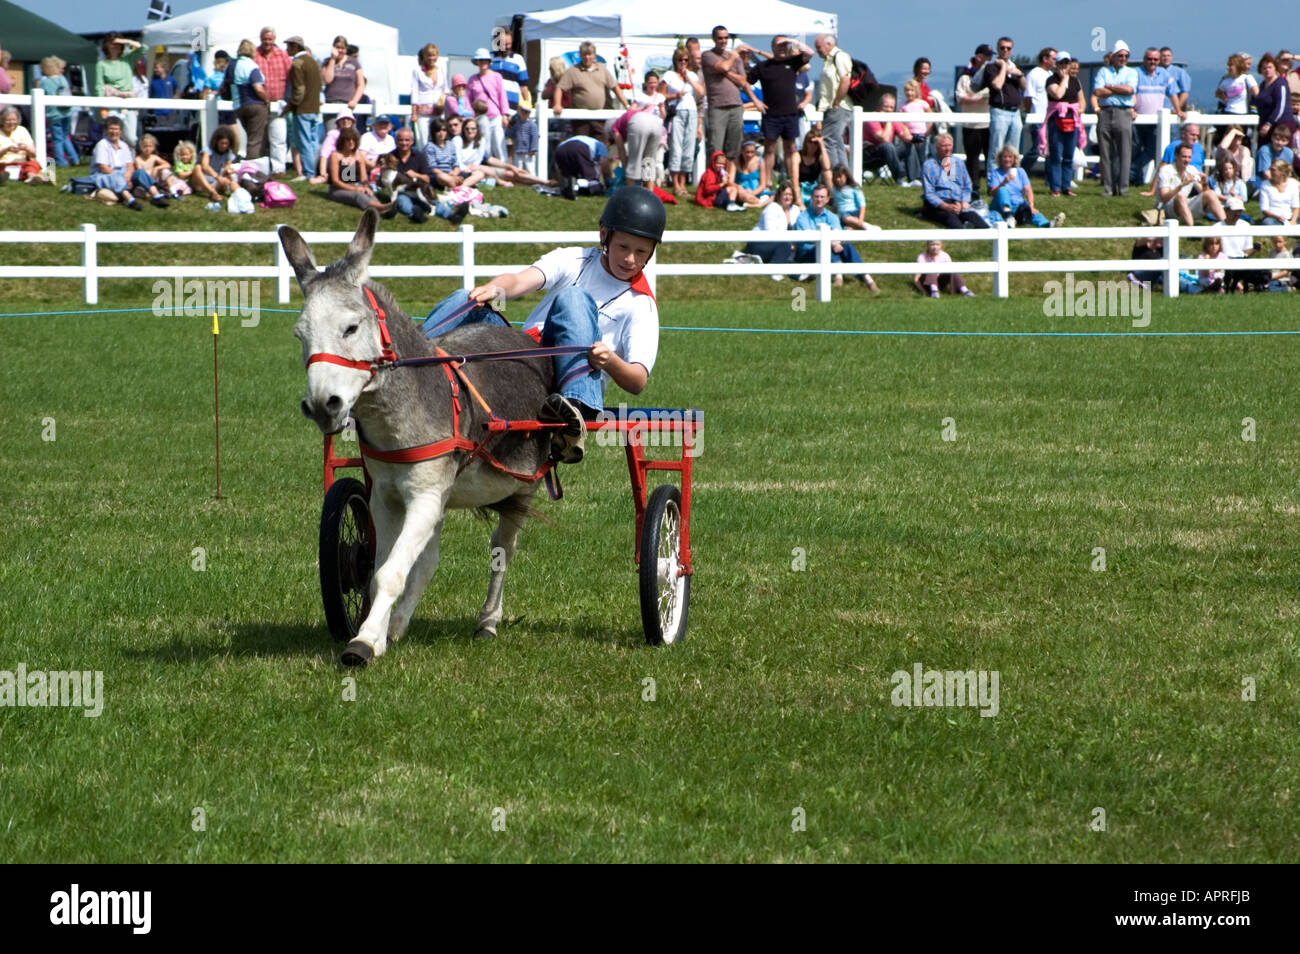 youngster riding a pony and trap - Stock Image